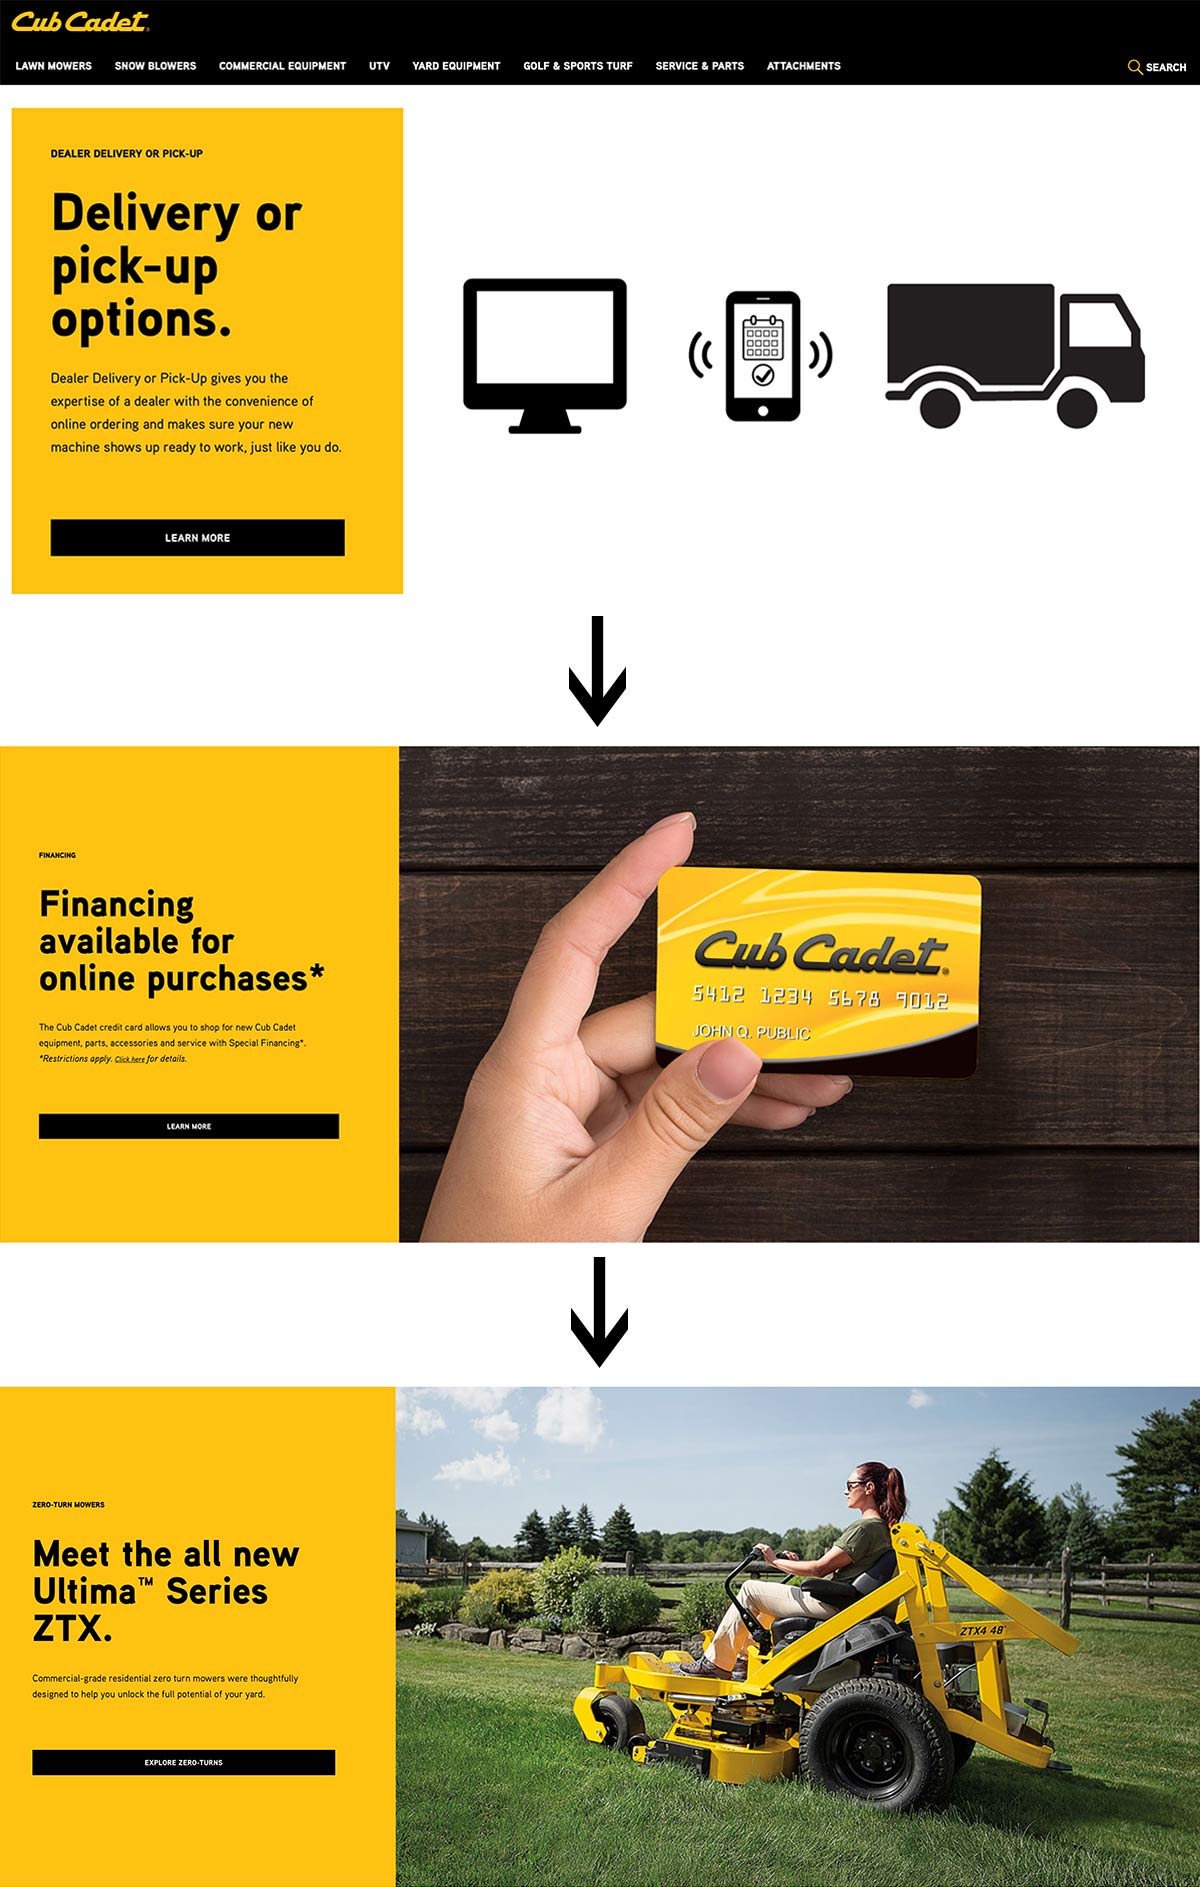 Cub Cadet breakout of slides for delivery and financing